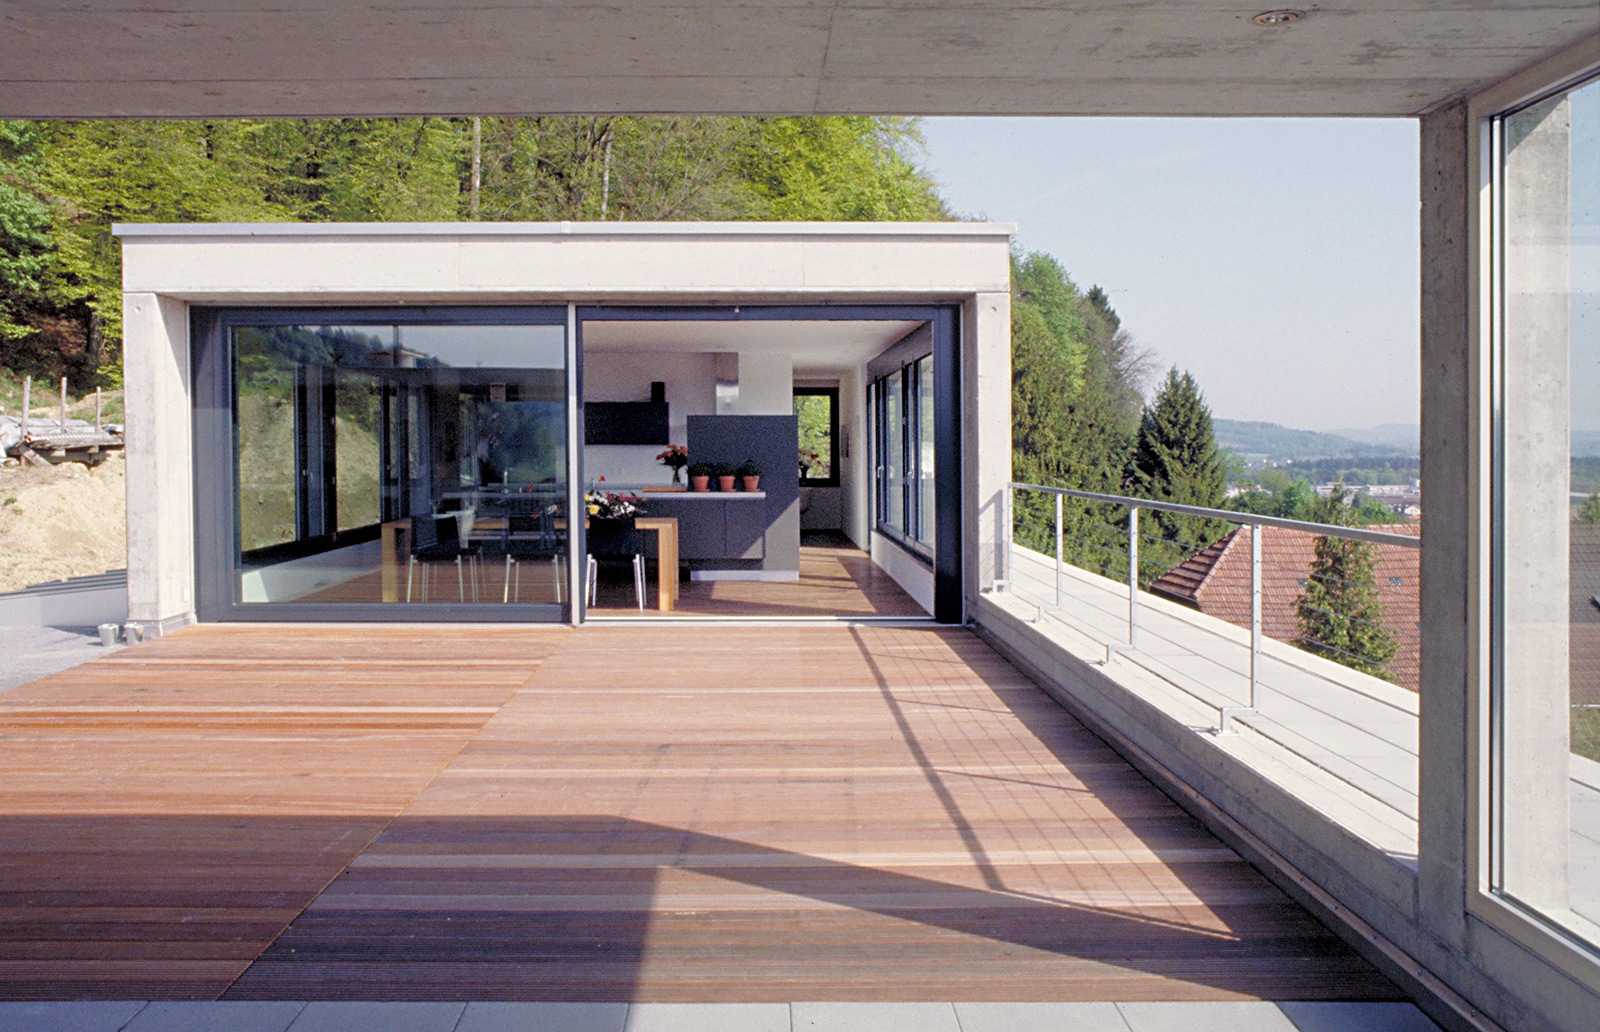 The growing house, interior/exterior